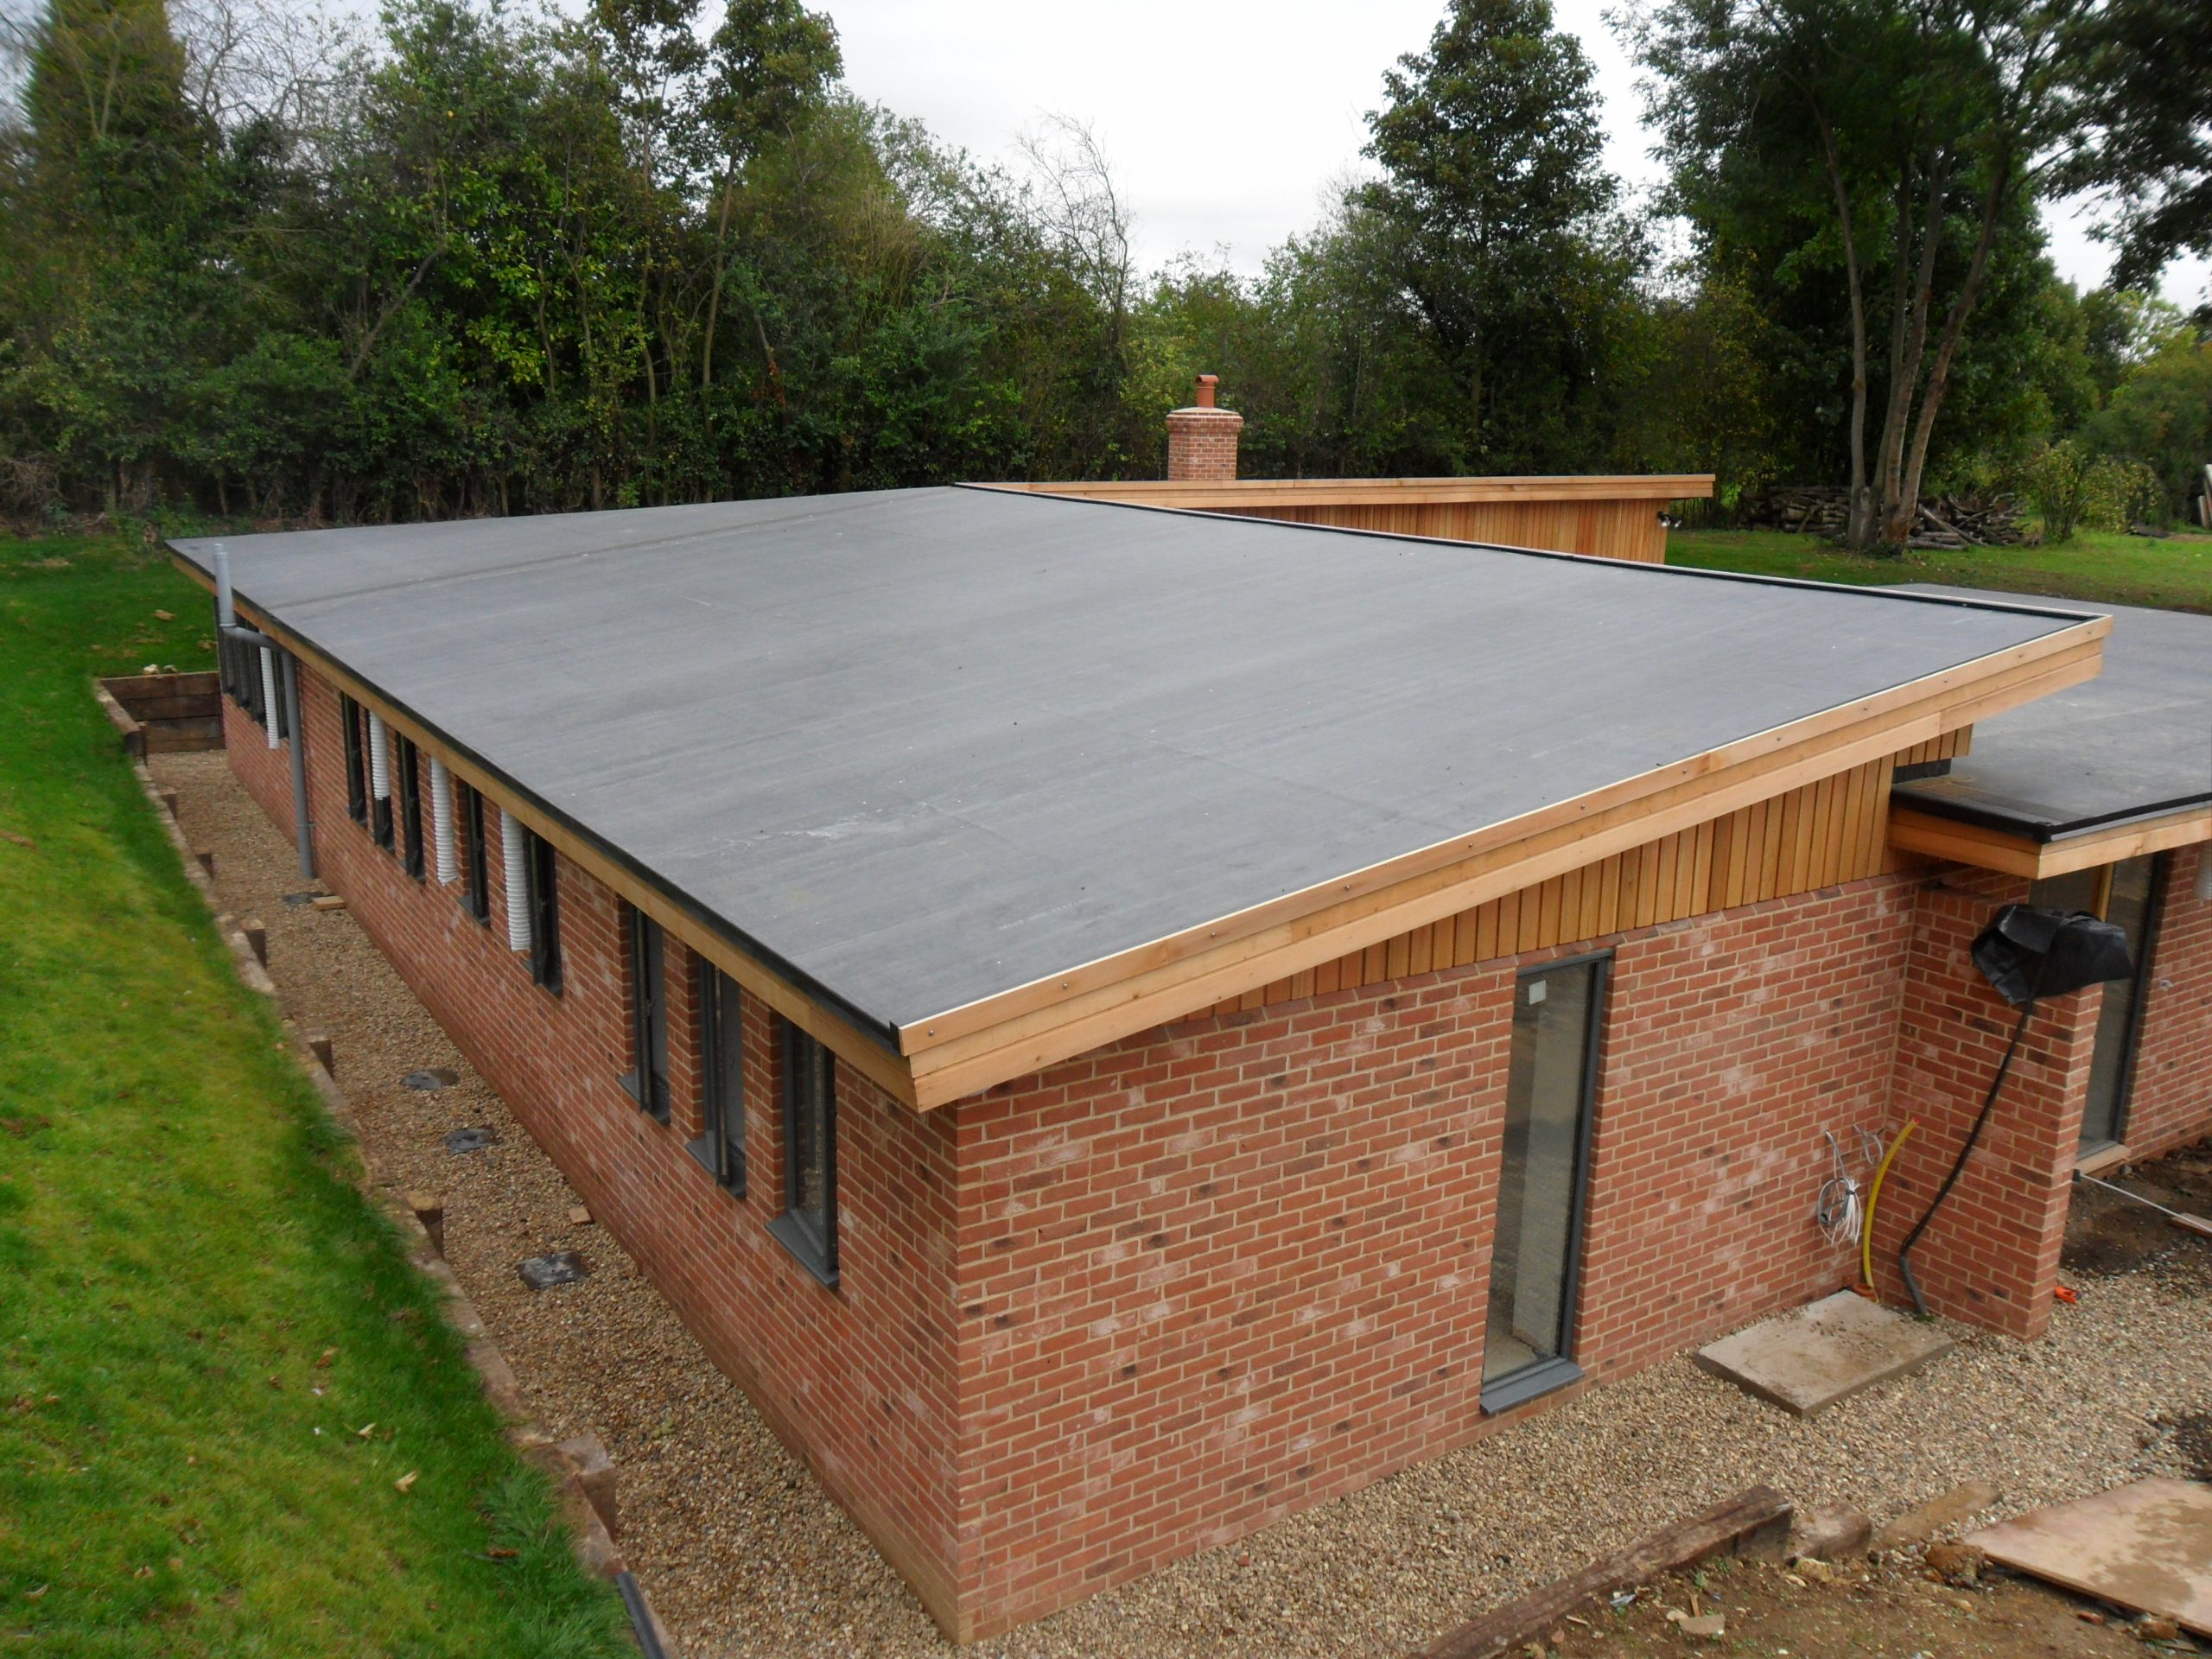 Flat Roof Services Flat Roofing For Trade Diy Epdm Kits